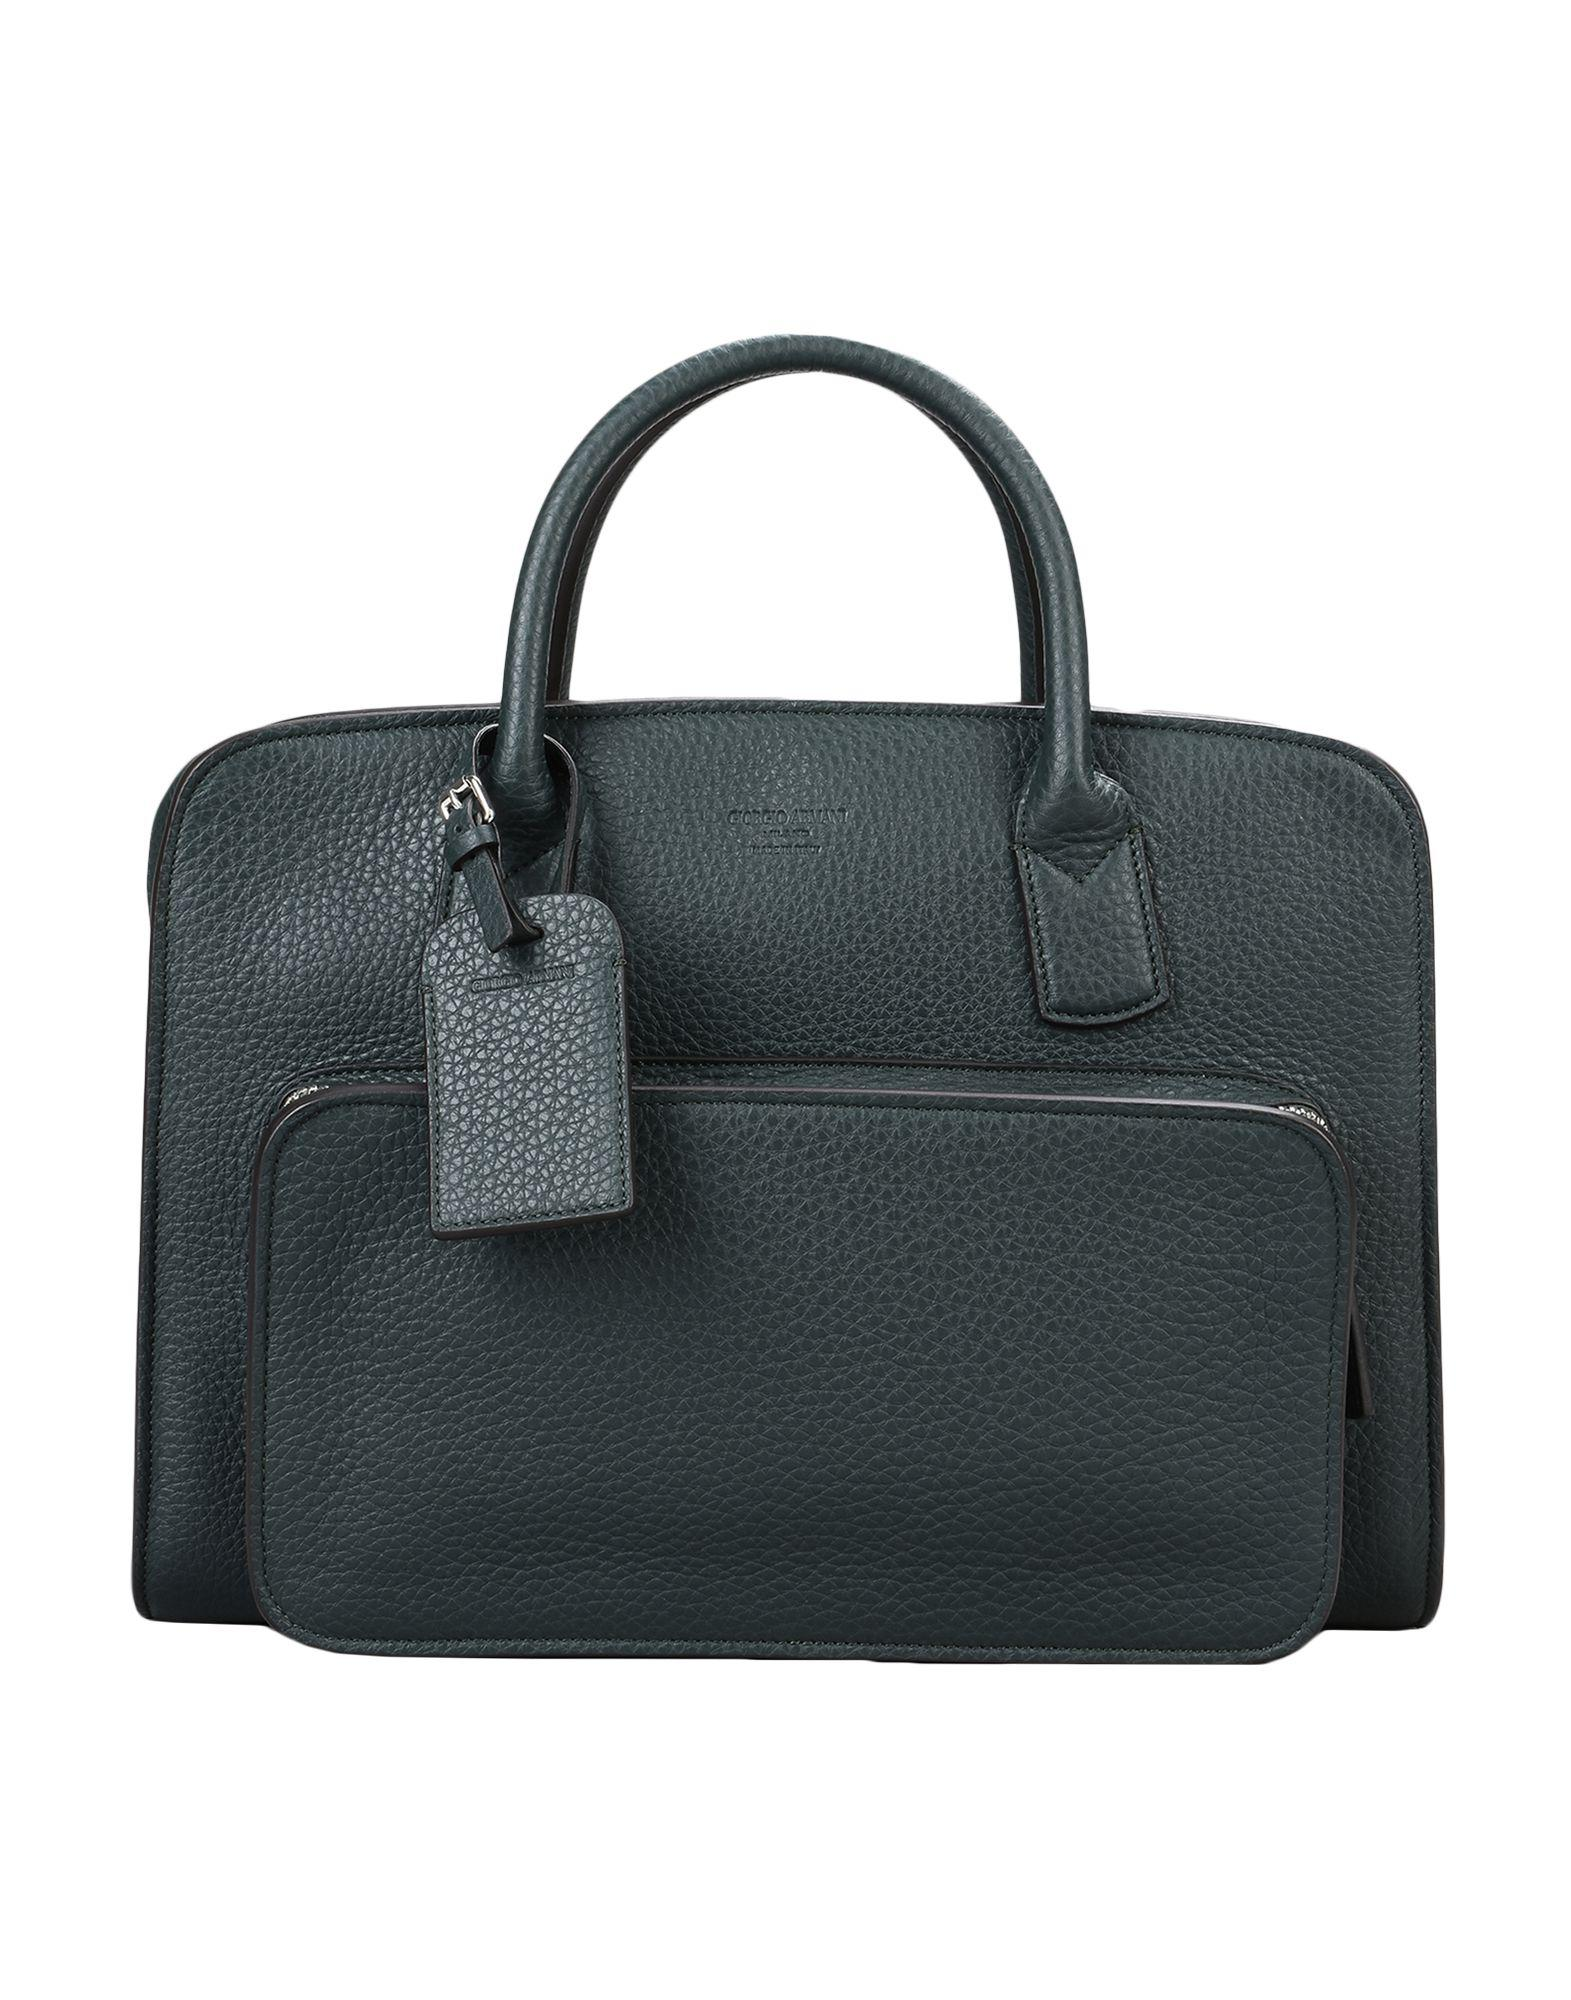 Lyst - Giorgio Armani Work Bags in Green for Men 1d27070557